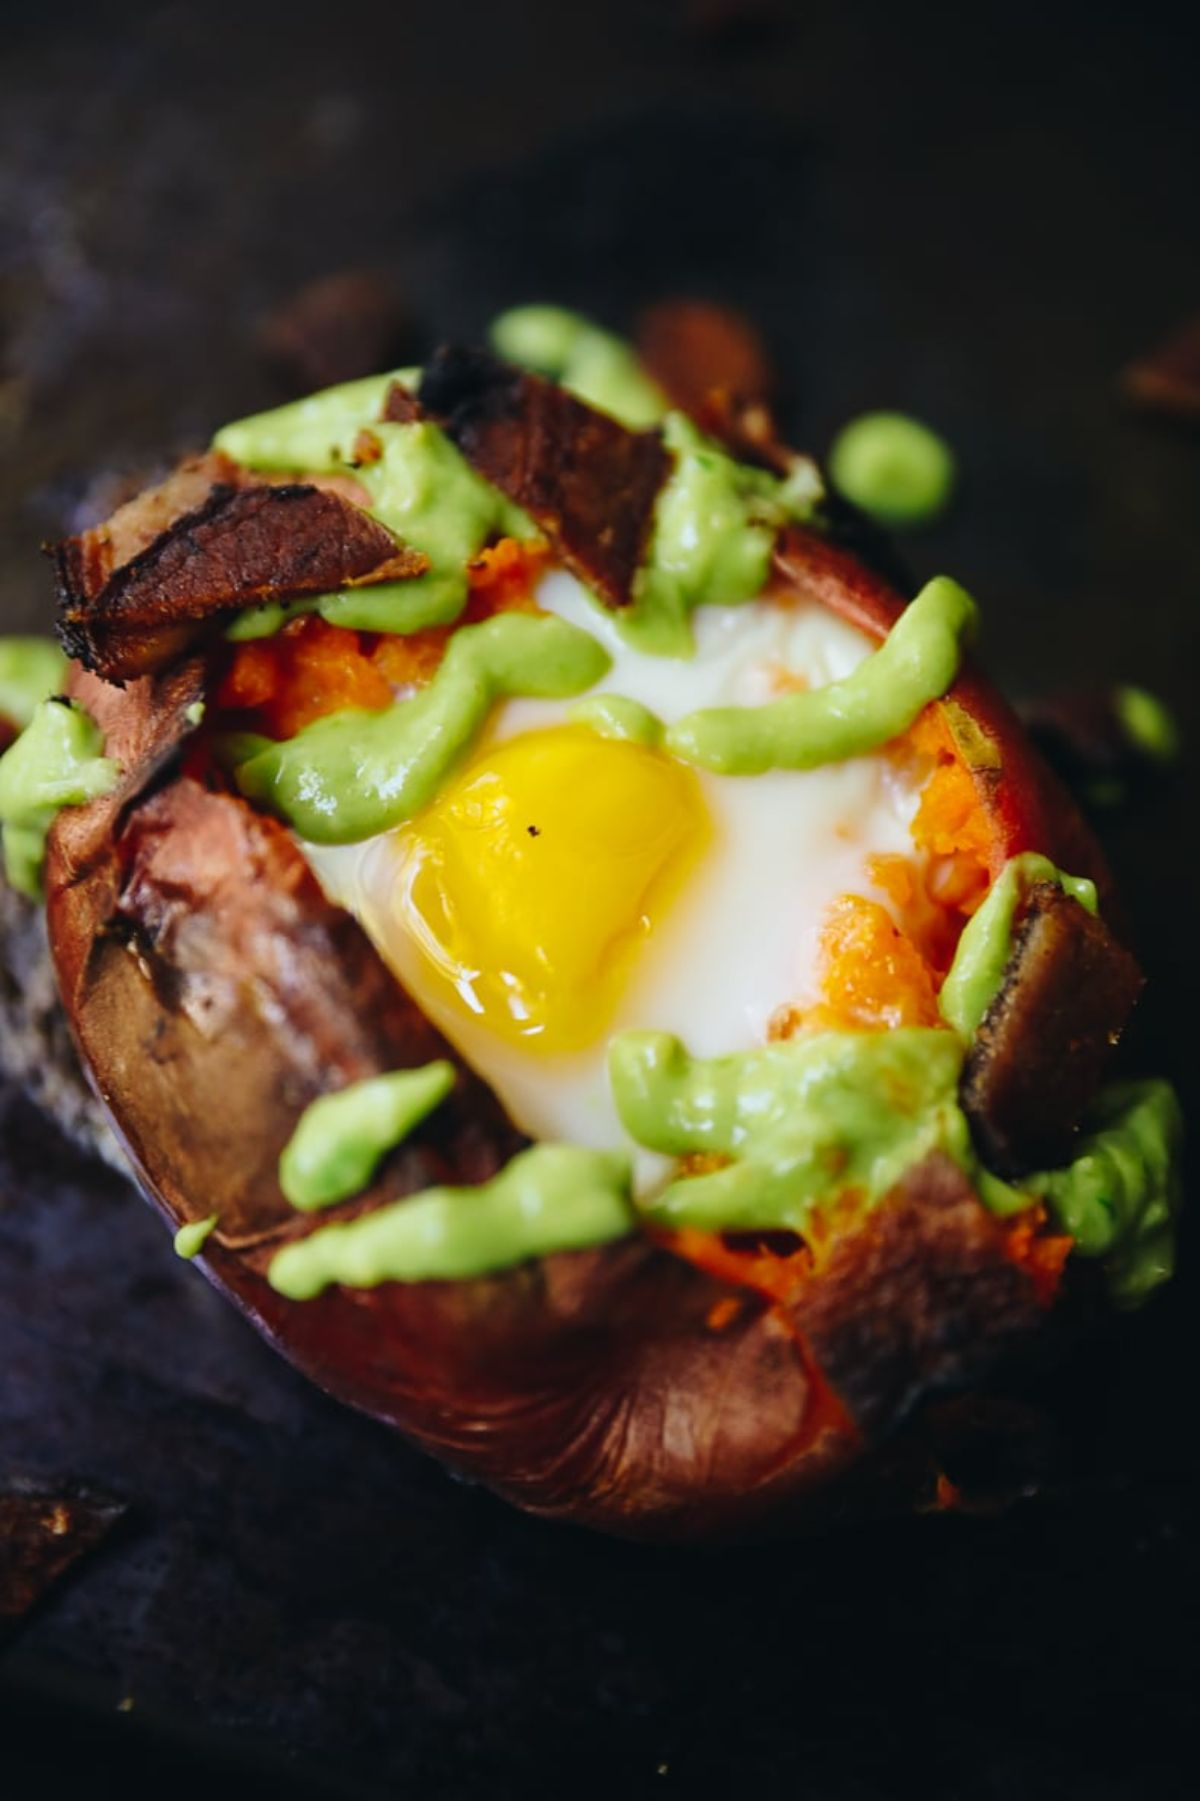 a sweet potato stuffed with a baked egg and drizzled with guacamole